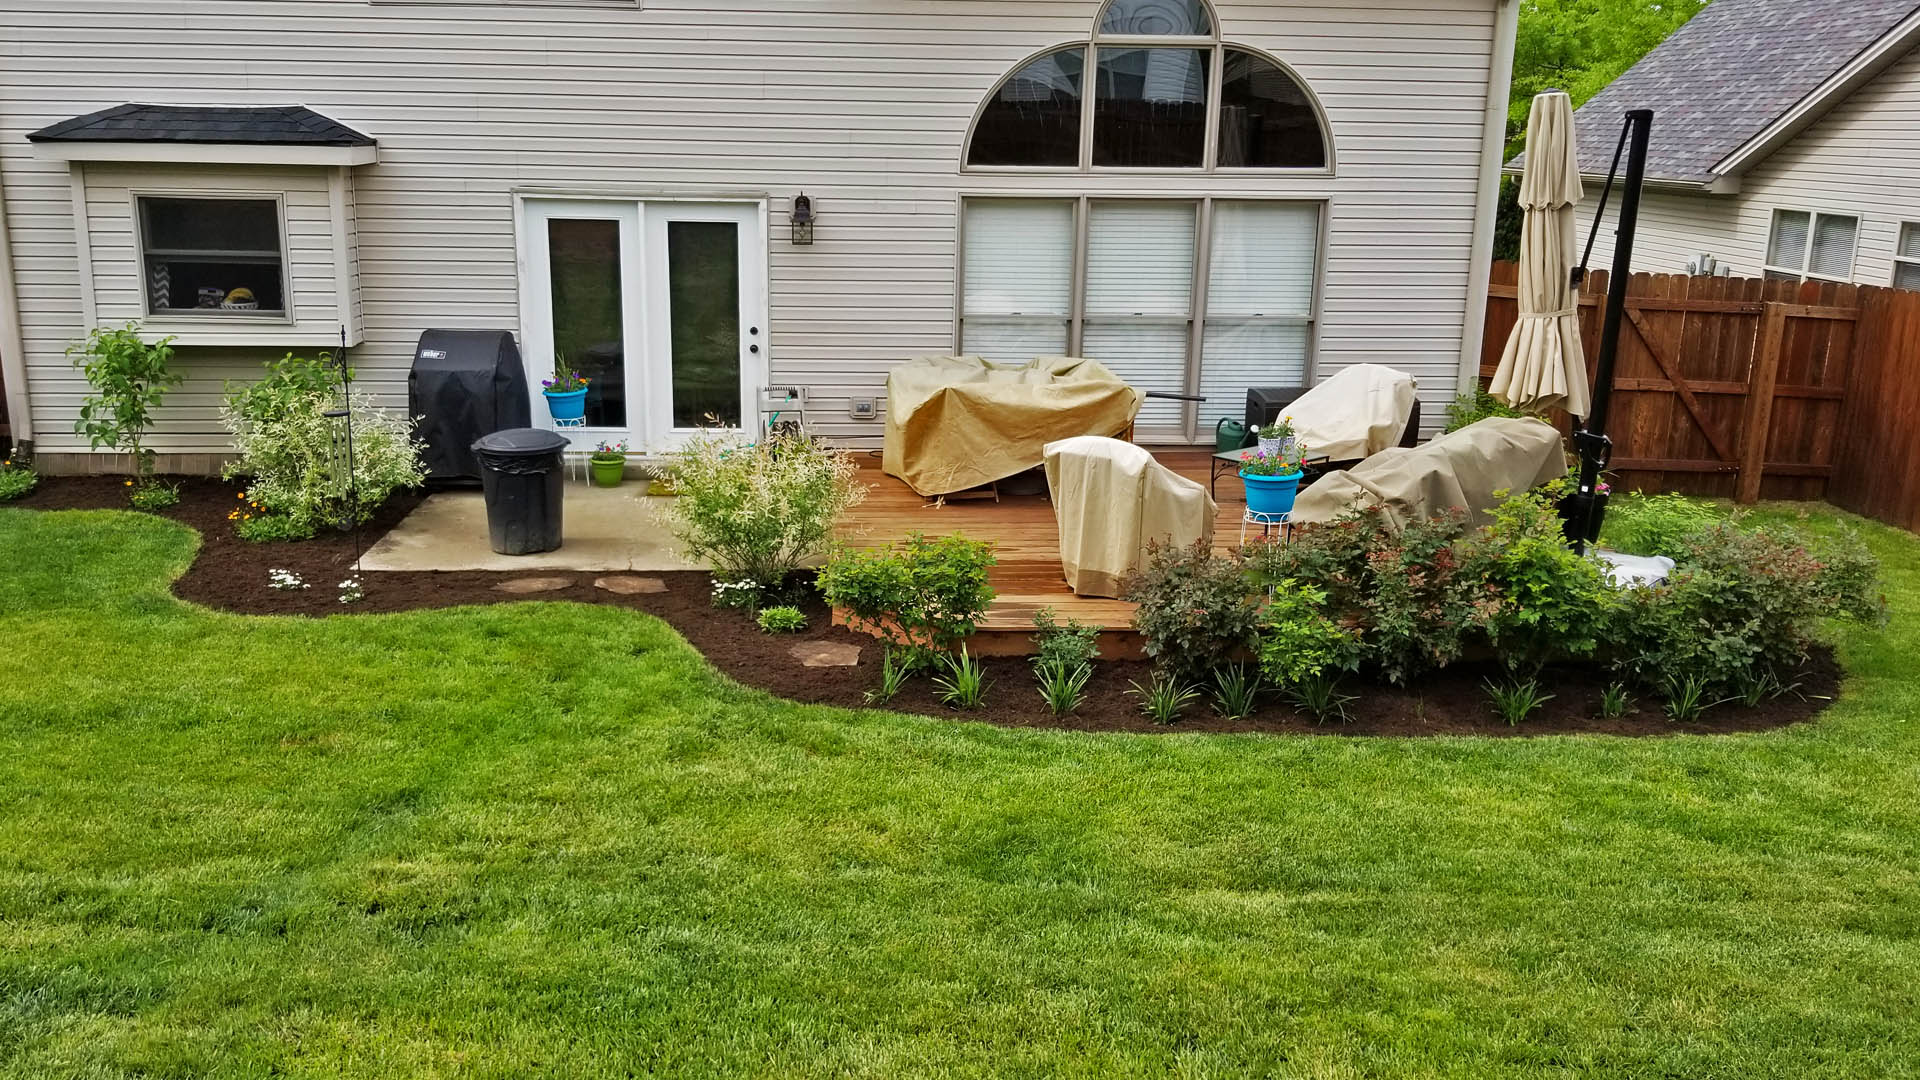 Landscaping project by Allen's Lawn Service in Lexington, KY.